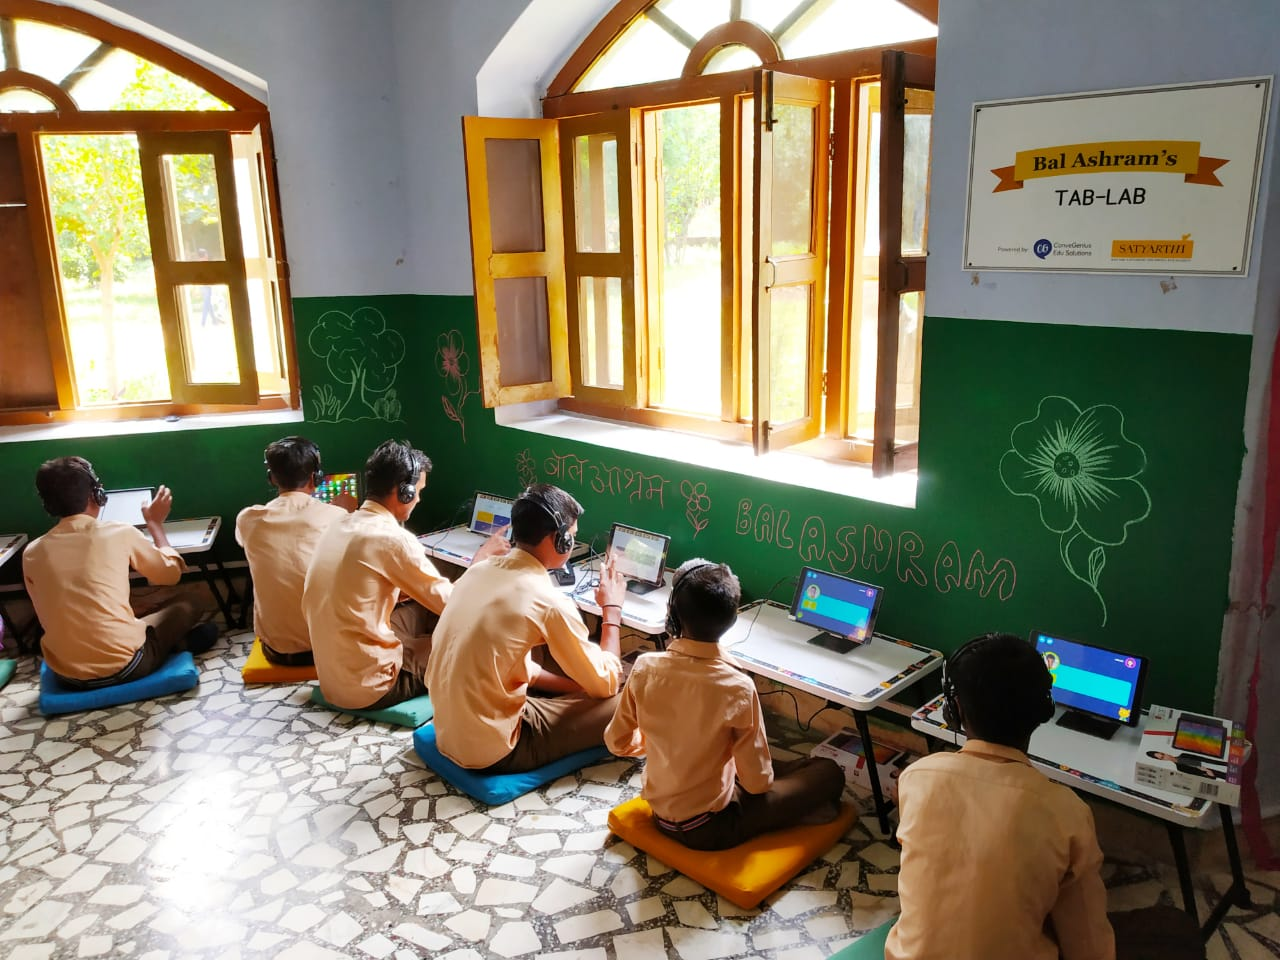 ConveGenius Tab Lab in Kailash Satyarthi's Bal Ashram